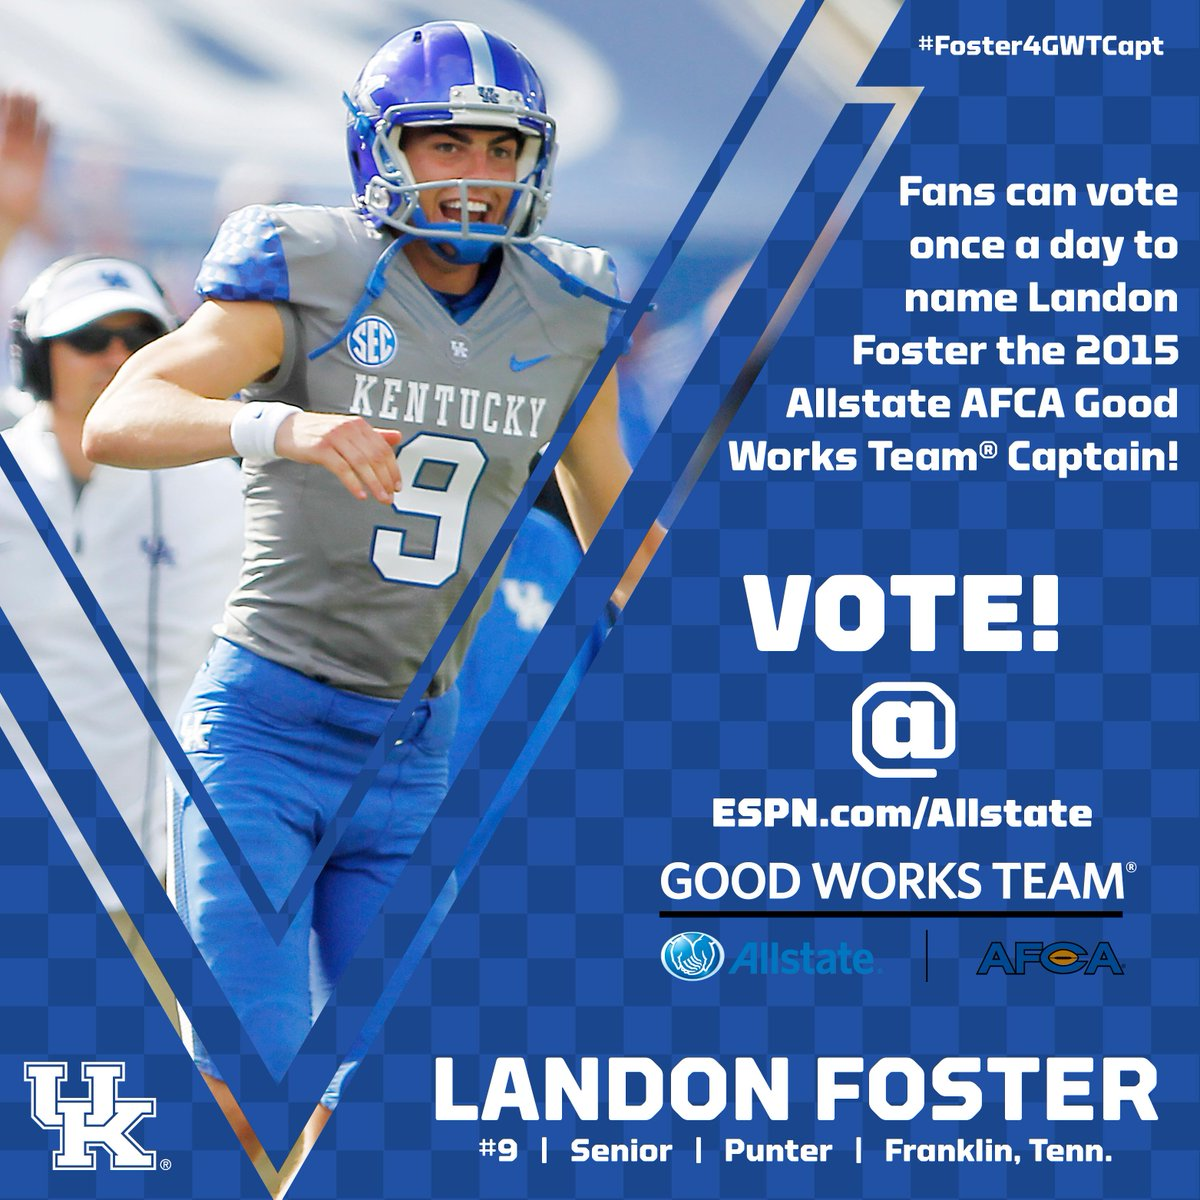 Vote For Landon Foster To Be Captain Of The Allstate Afca Good Works